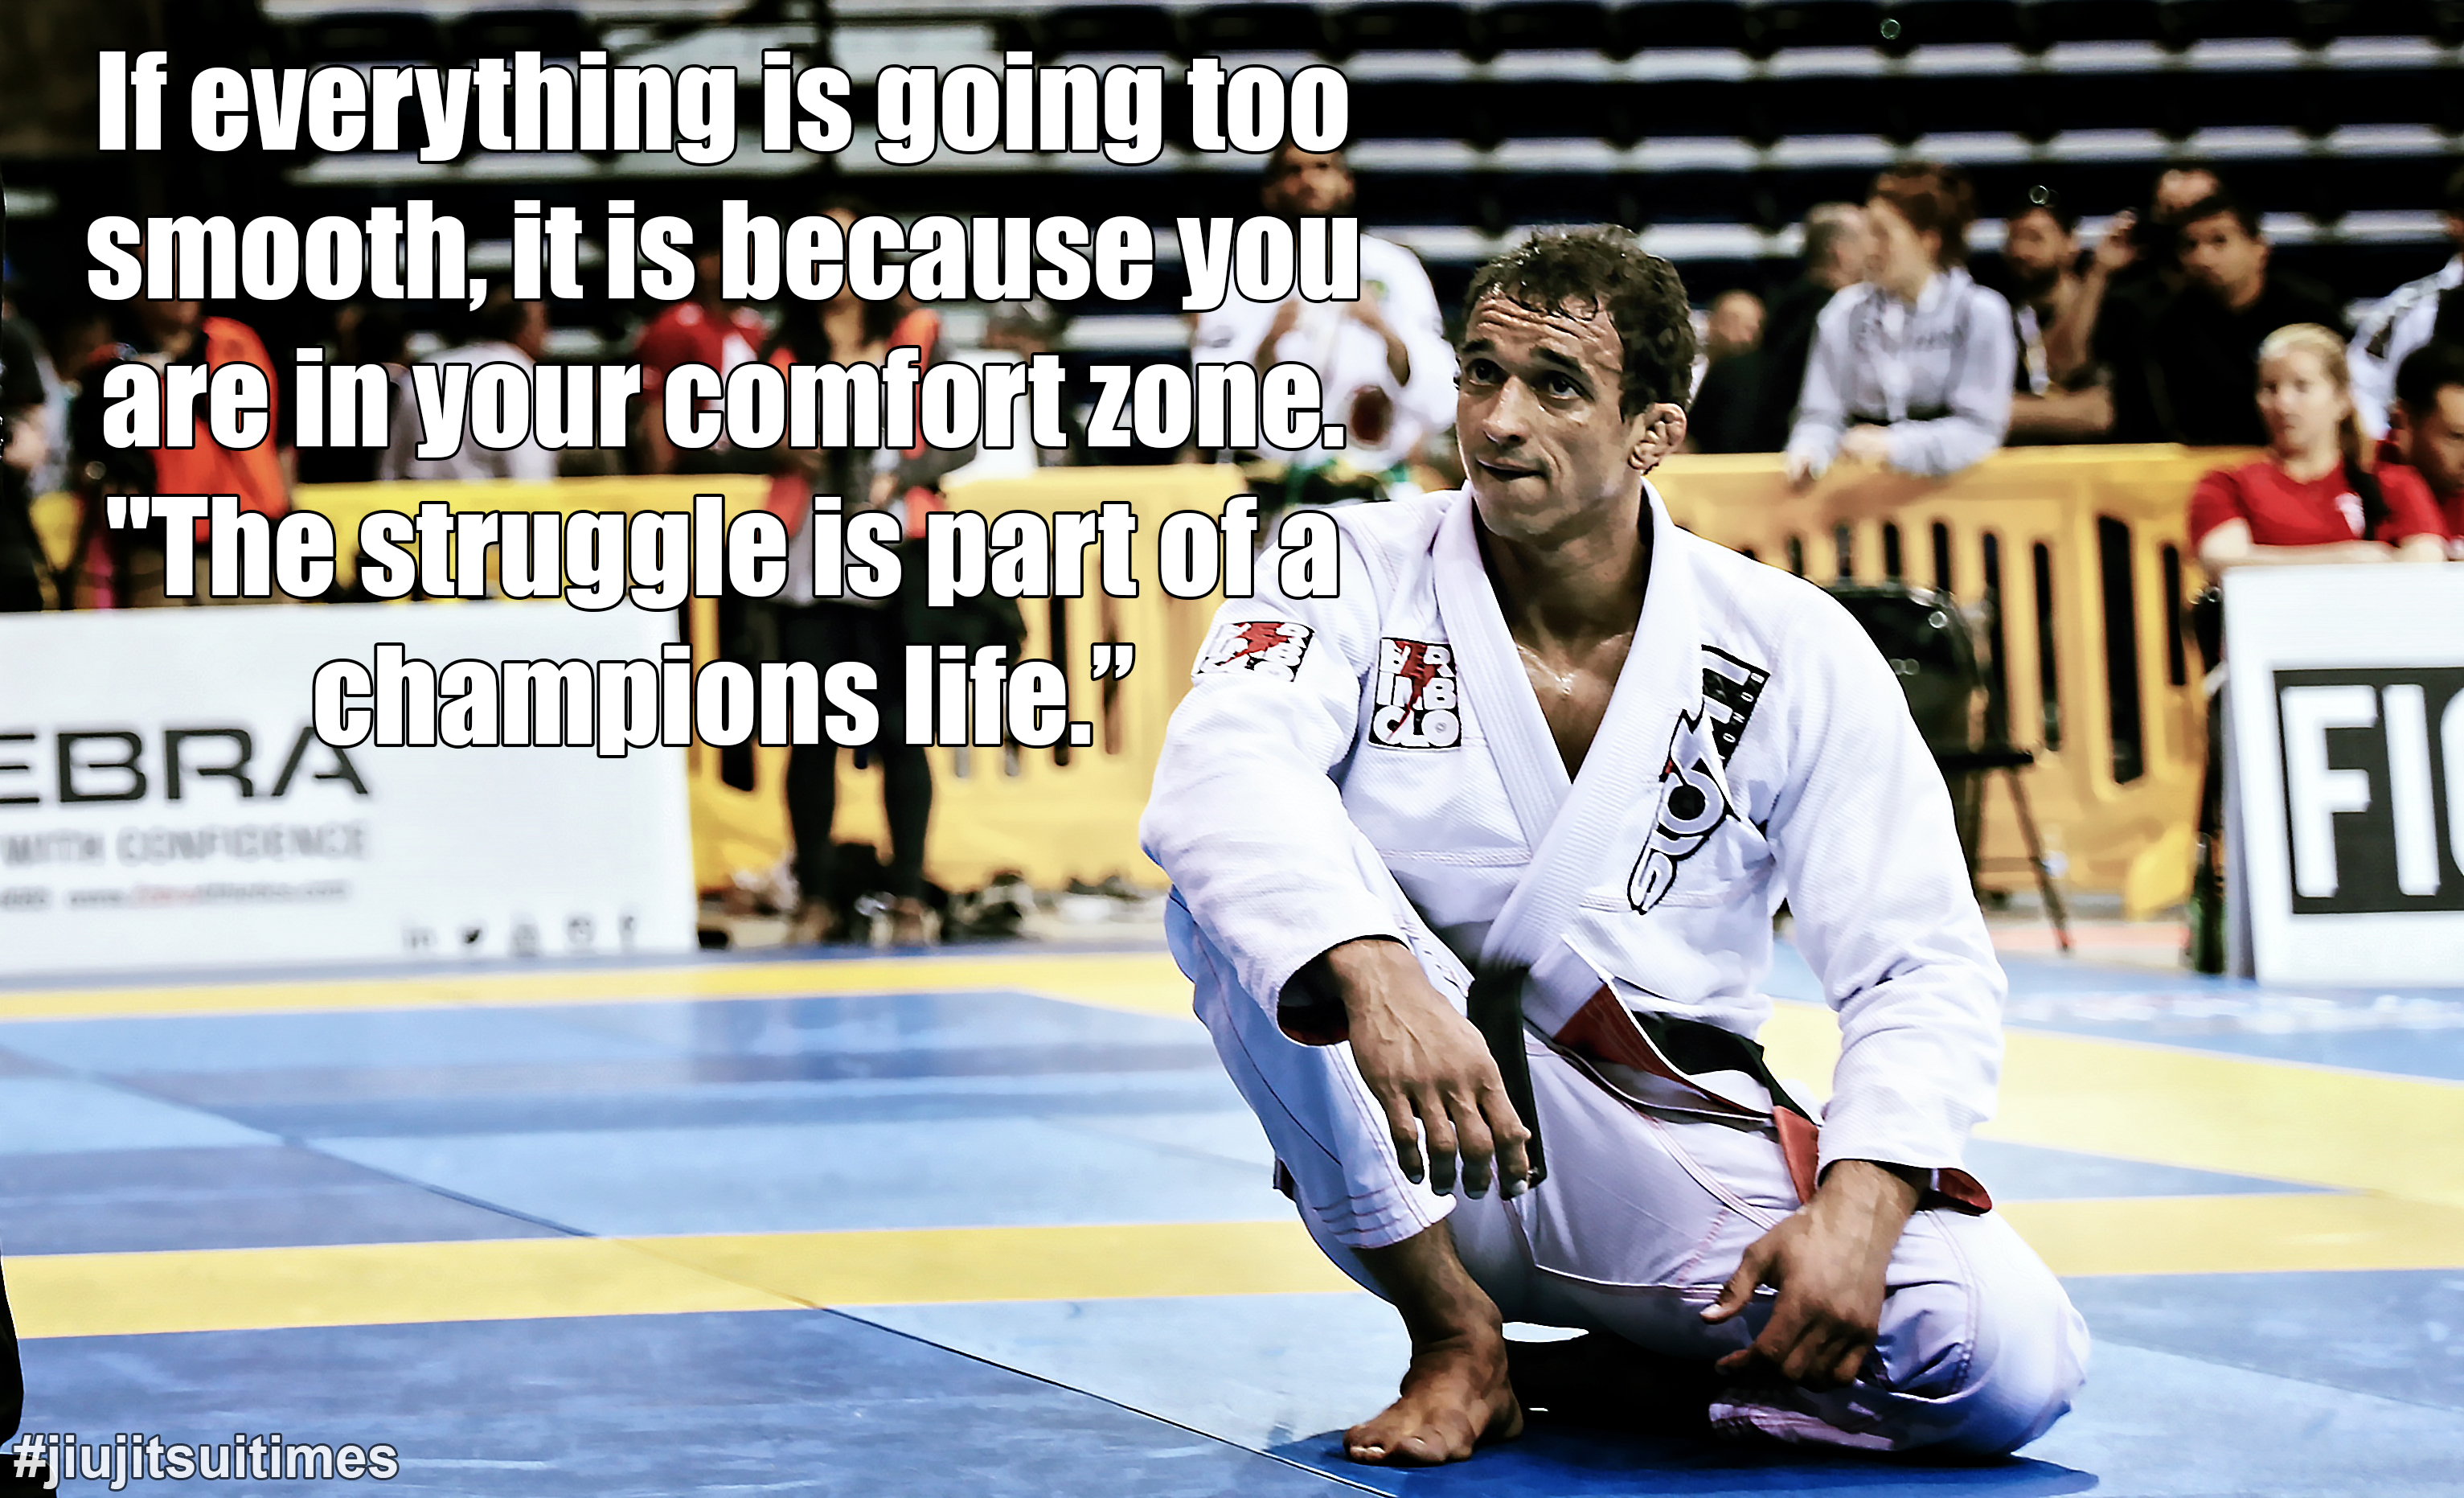 Jiu Jitsu Quotes 10 Great Motivational Jiujitsu Quotes